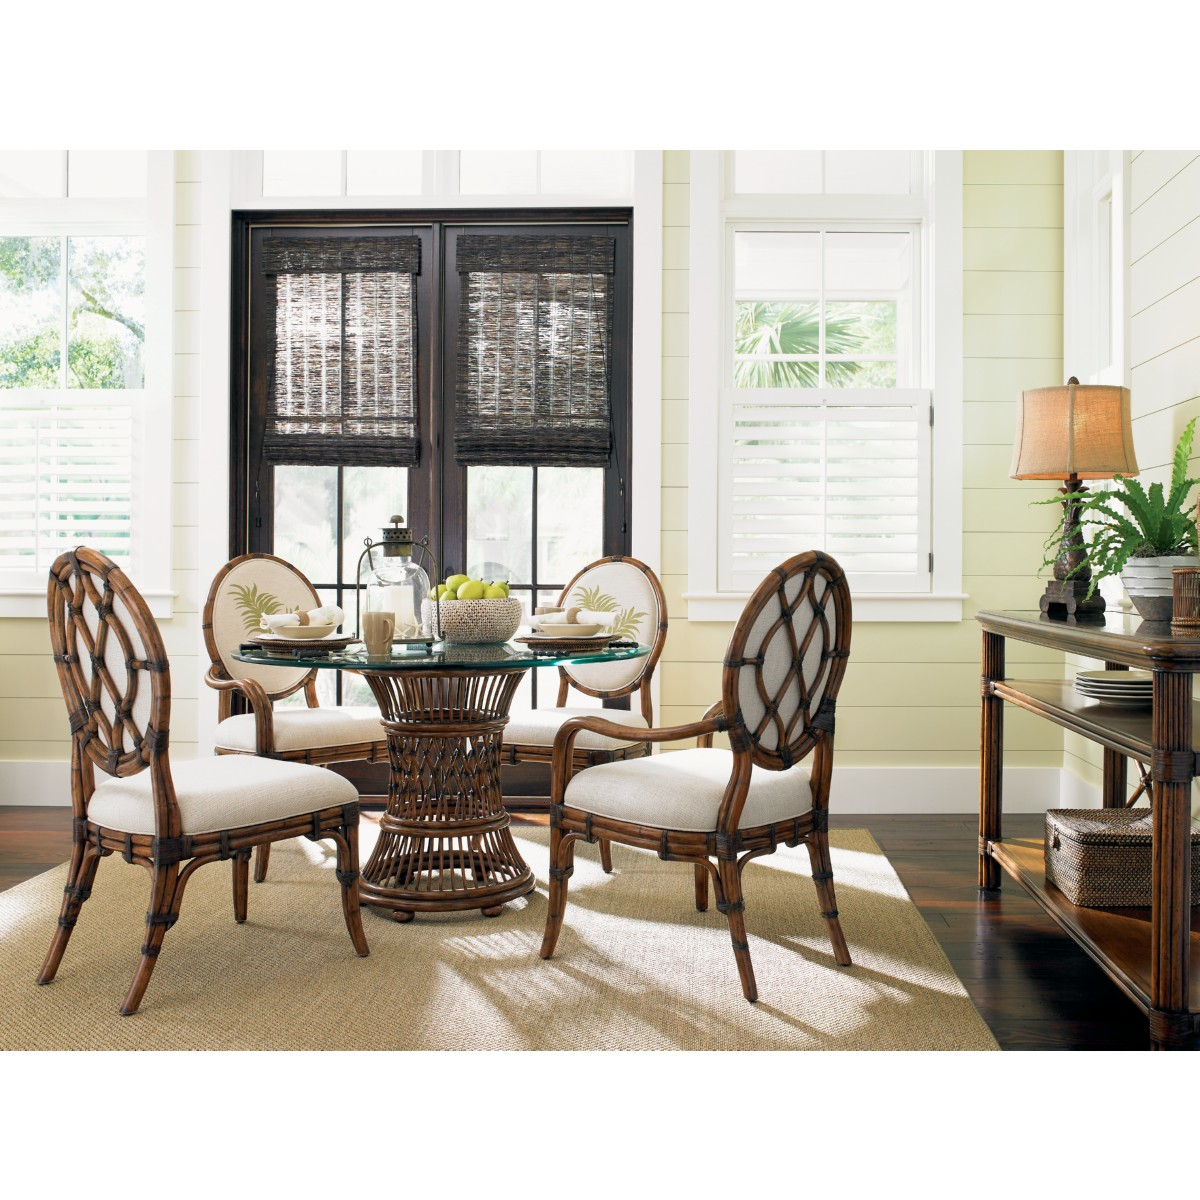 Tommy Bahama Home 593-881-02 Gulfstream Oval Back Arm Dining Chair ...